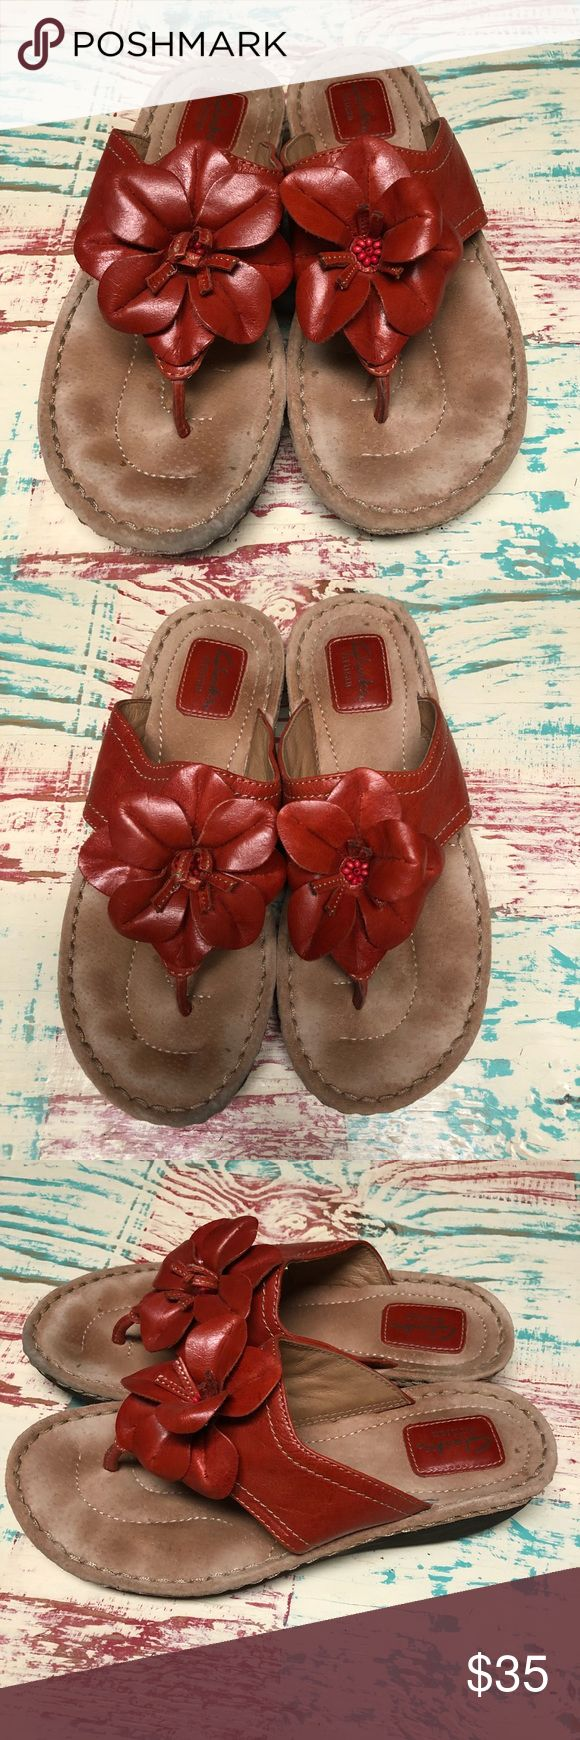 Women's Clarks Artisan Red Flower Leather Sandals Ladies Clarks Artisan Flower Leather Sandals Size 9 Minimally worn, maybe once.  Ready to enjoy this upcoming spring and summer season.  Check out my closet for other Born and Clark shoes to bundle Clarks Shoes Sandals